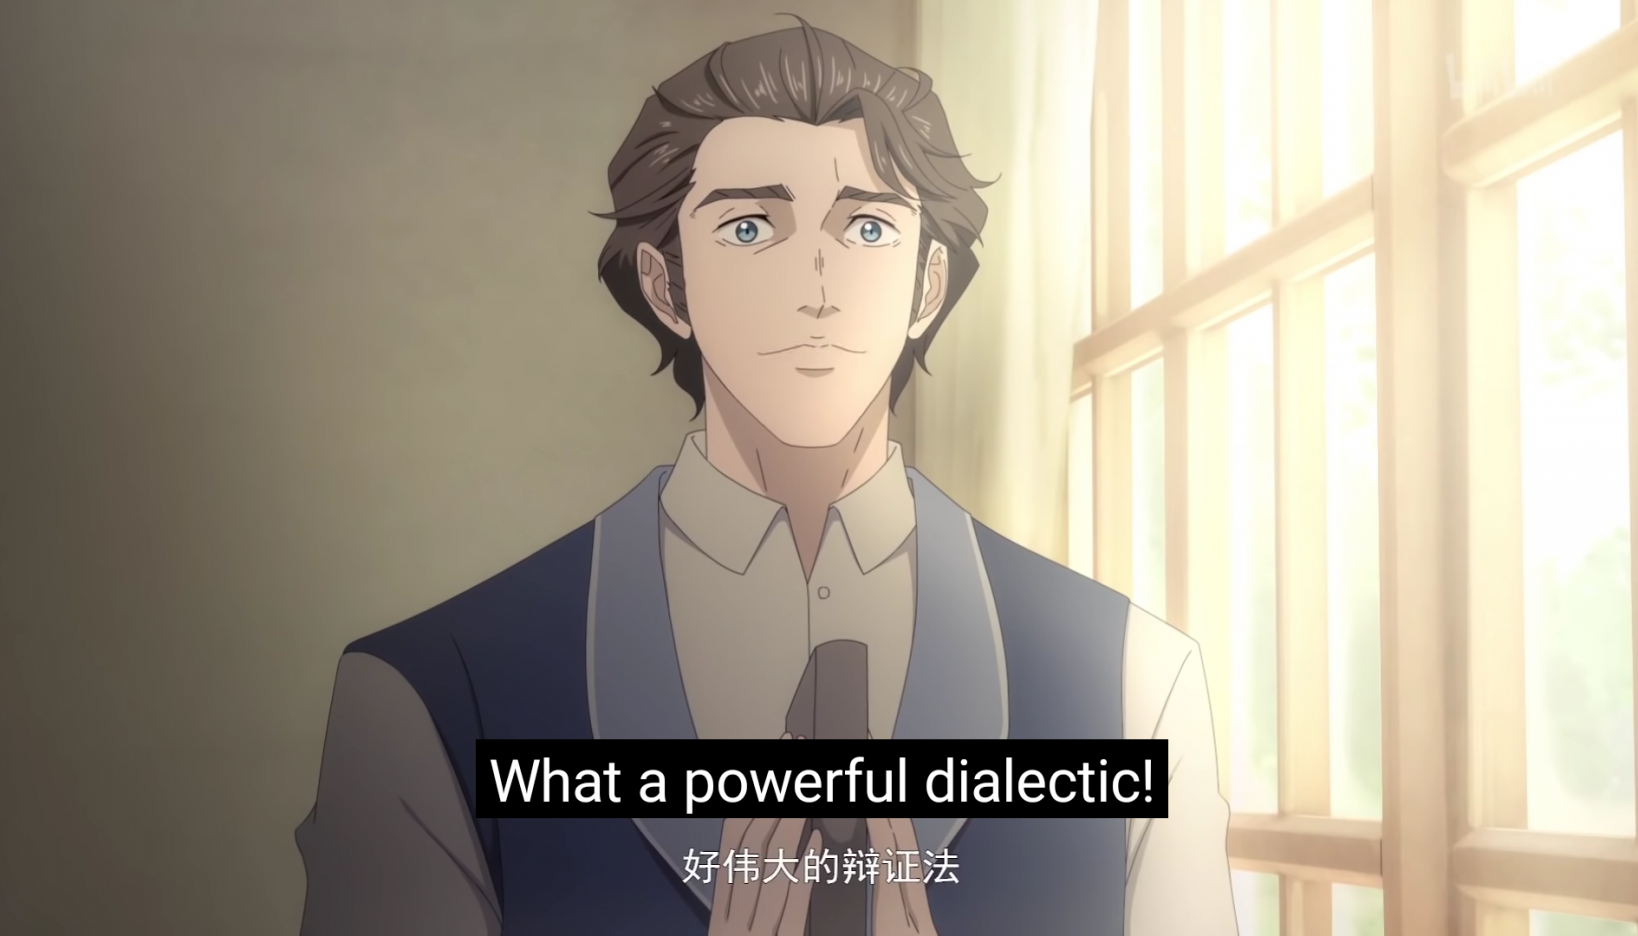 Screenshot featuring a young Karl Marx from The Leader, a state-produced Chinese anime series exploring the life and legacy of Marx, photo: Courtesy of the artist.